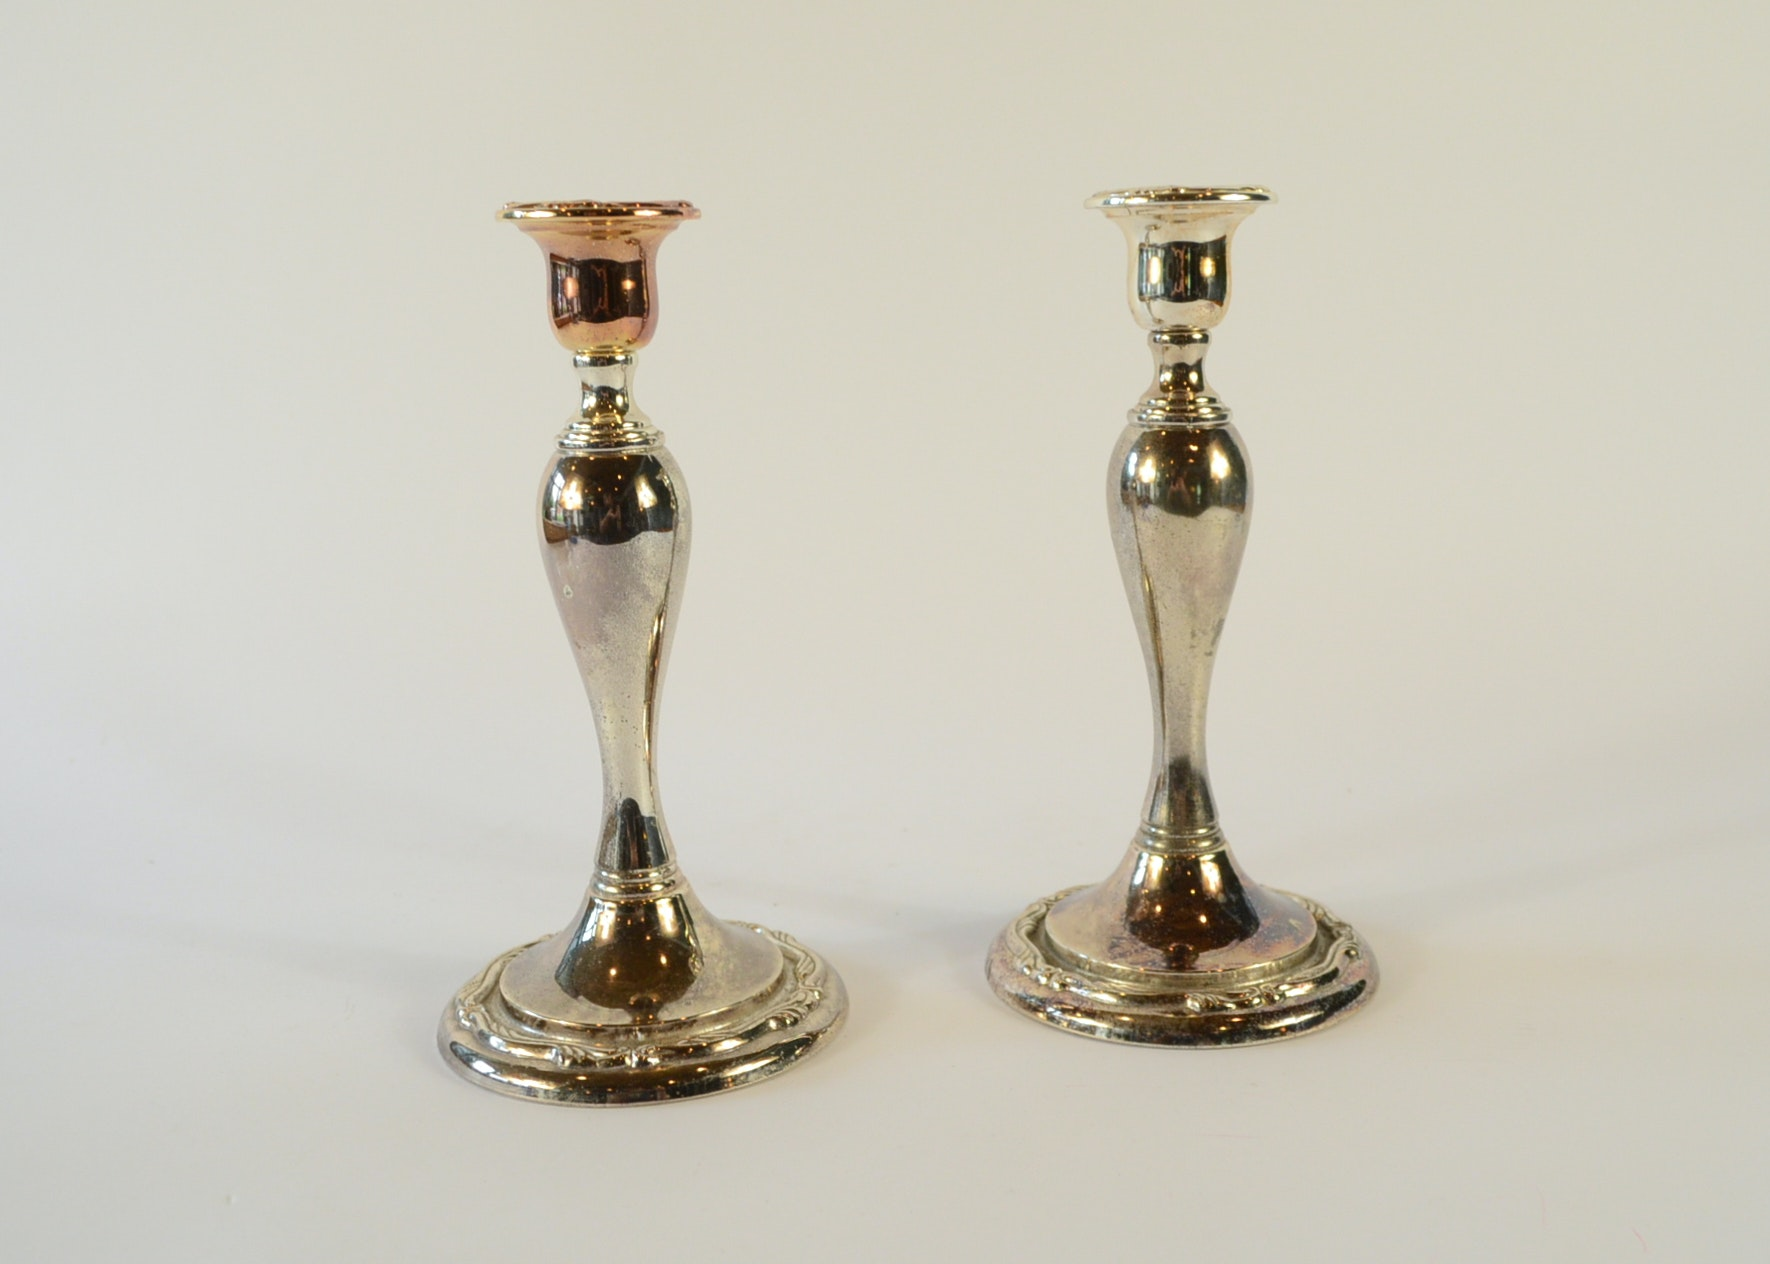 Pair of Oneida Silver Plate Candle Holders ... & Pair of Oneida Silver Plate Candle Holders : EBTH